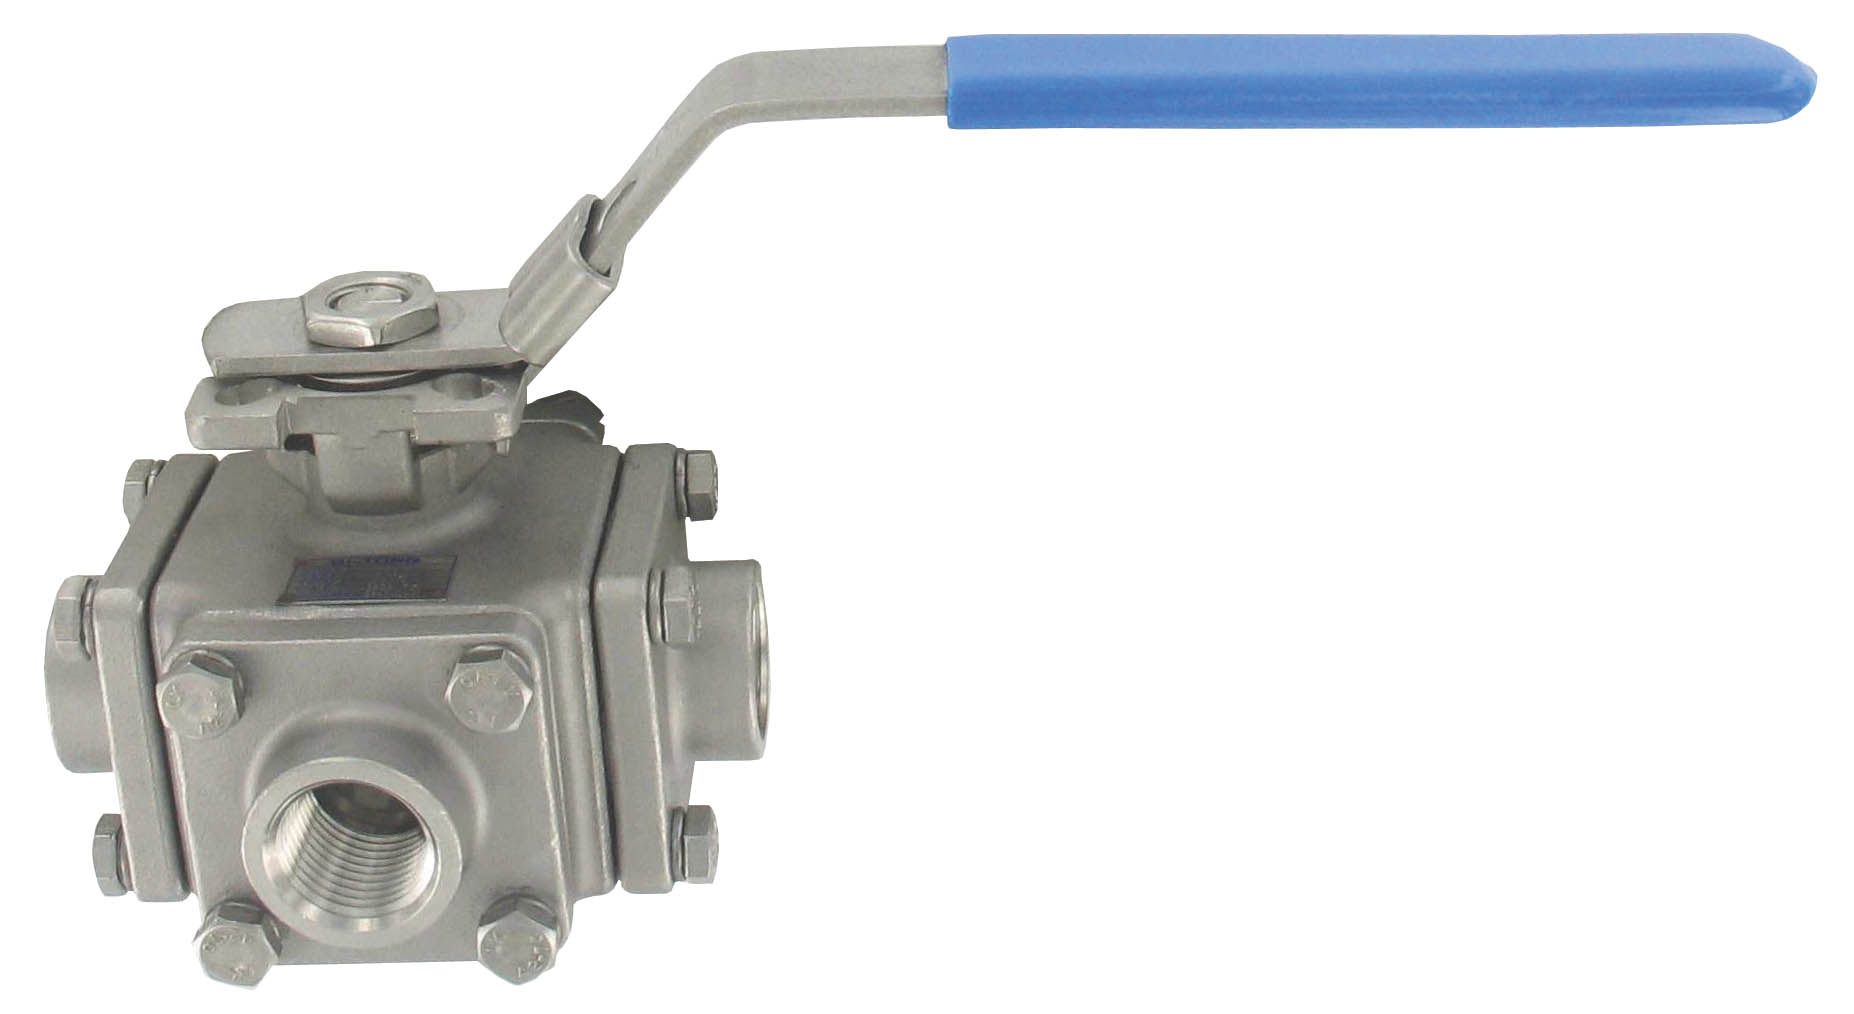 Banjo Electric 3 Way Directional Ball Valve: Series 3BV3H 3-Way Stainless Steel Ball Valve (Dwyer